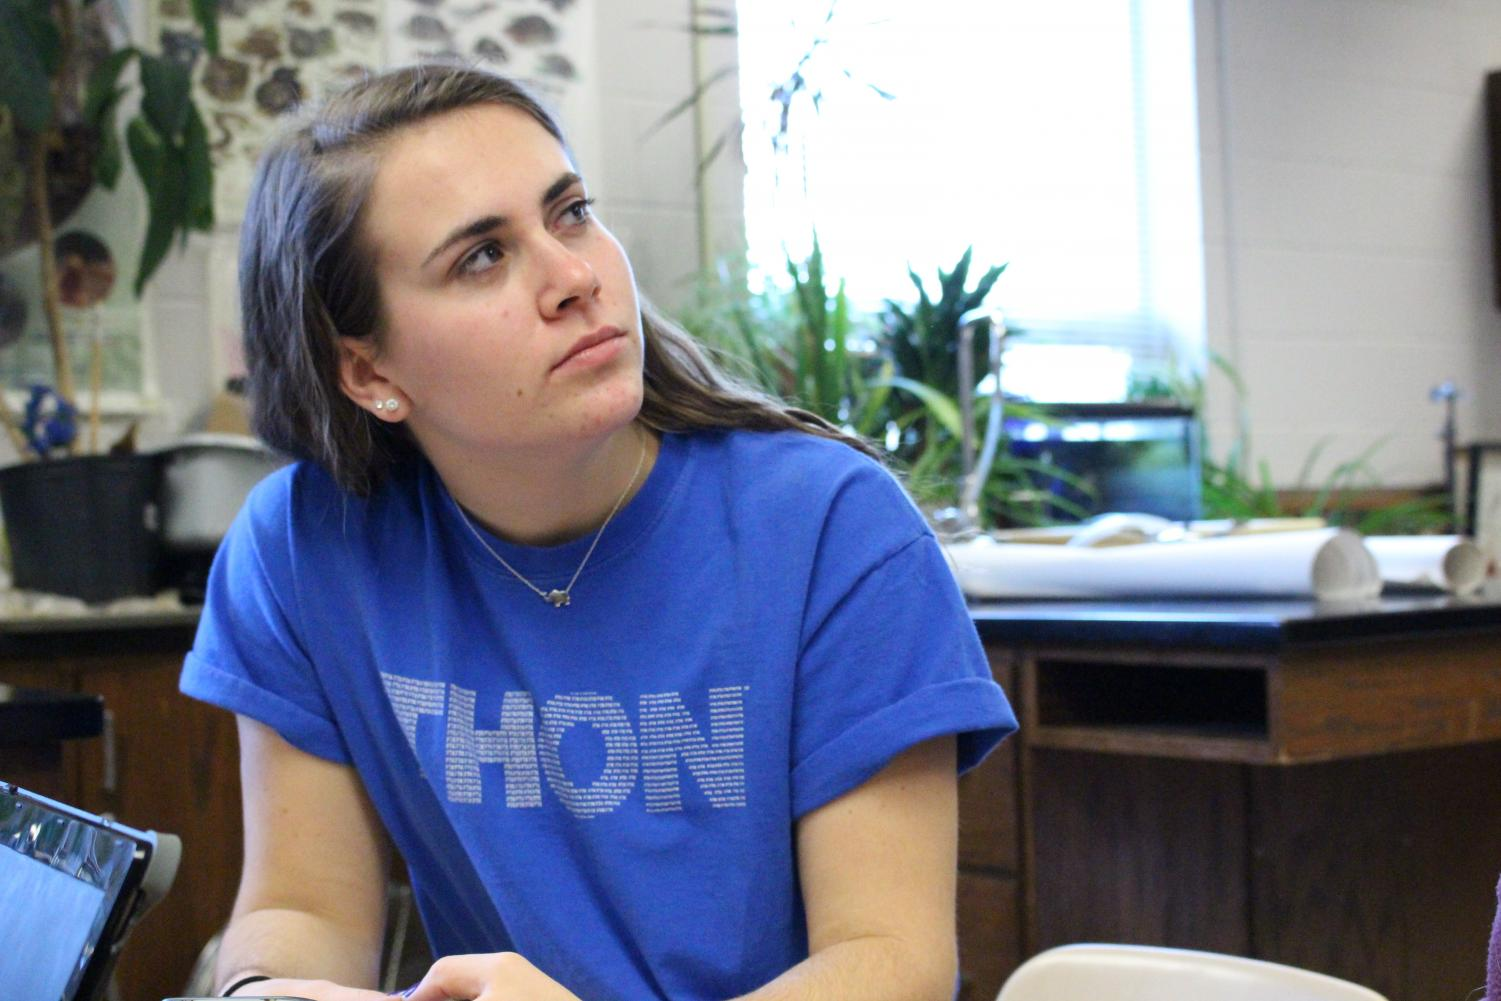 Junior Allyson Koller wears a blue THON shirt in support of the cause.